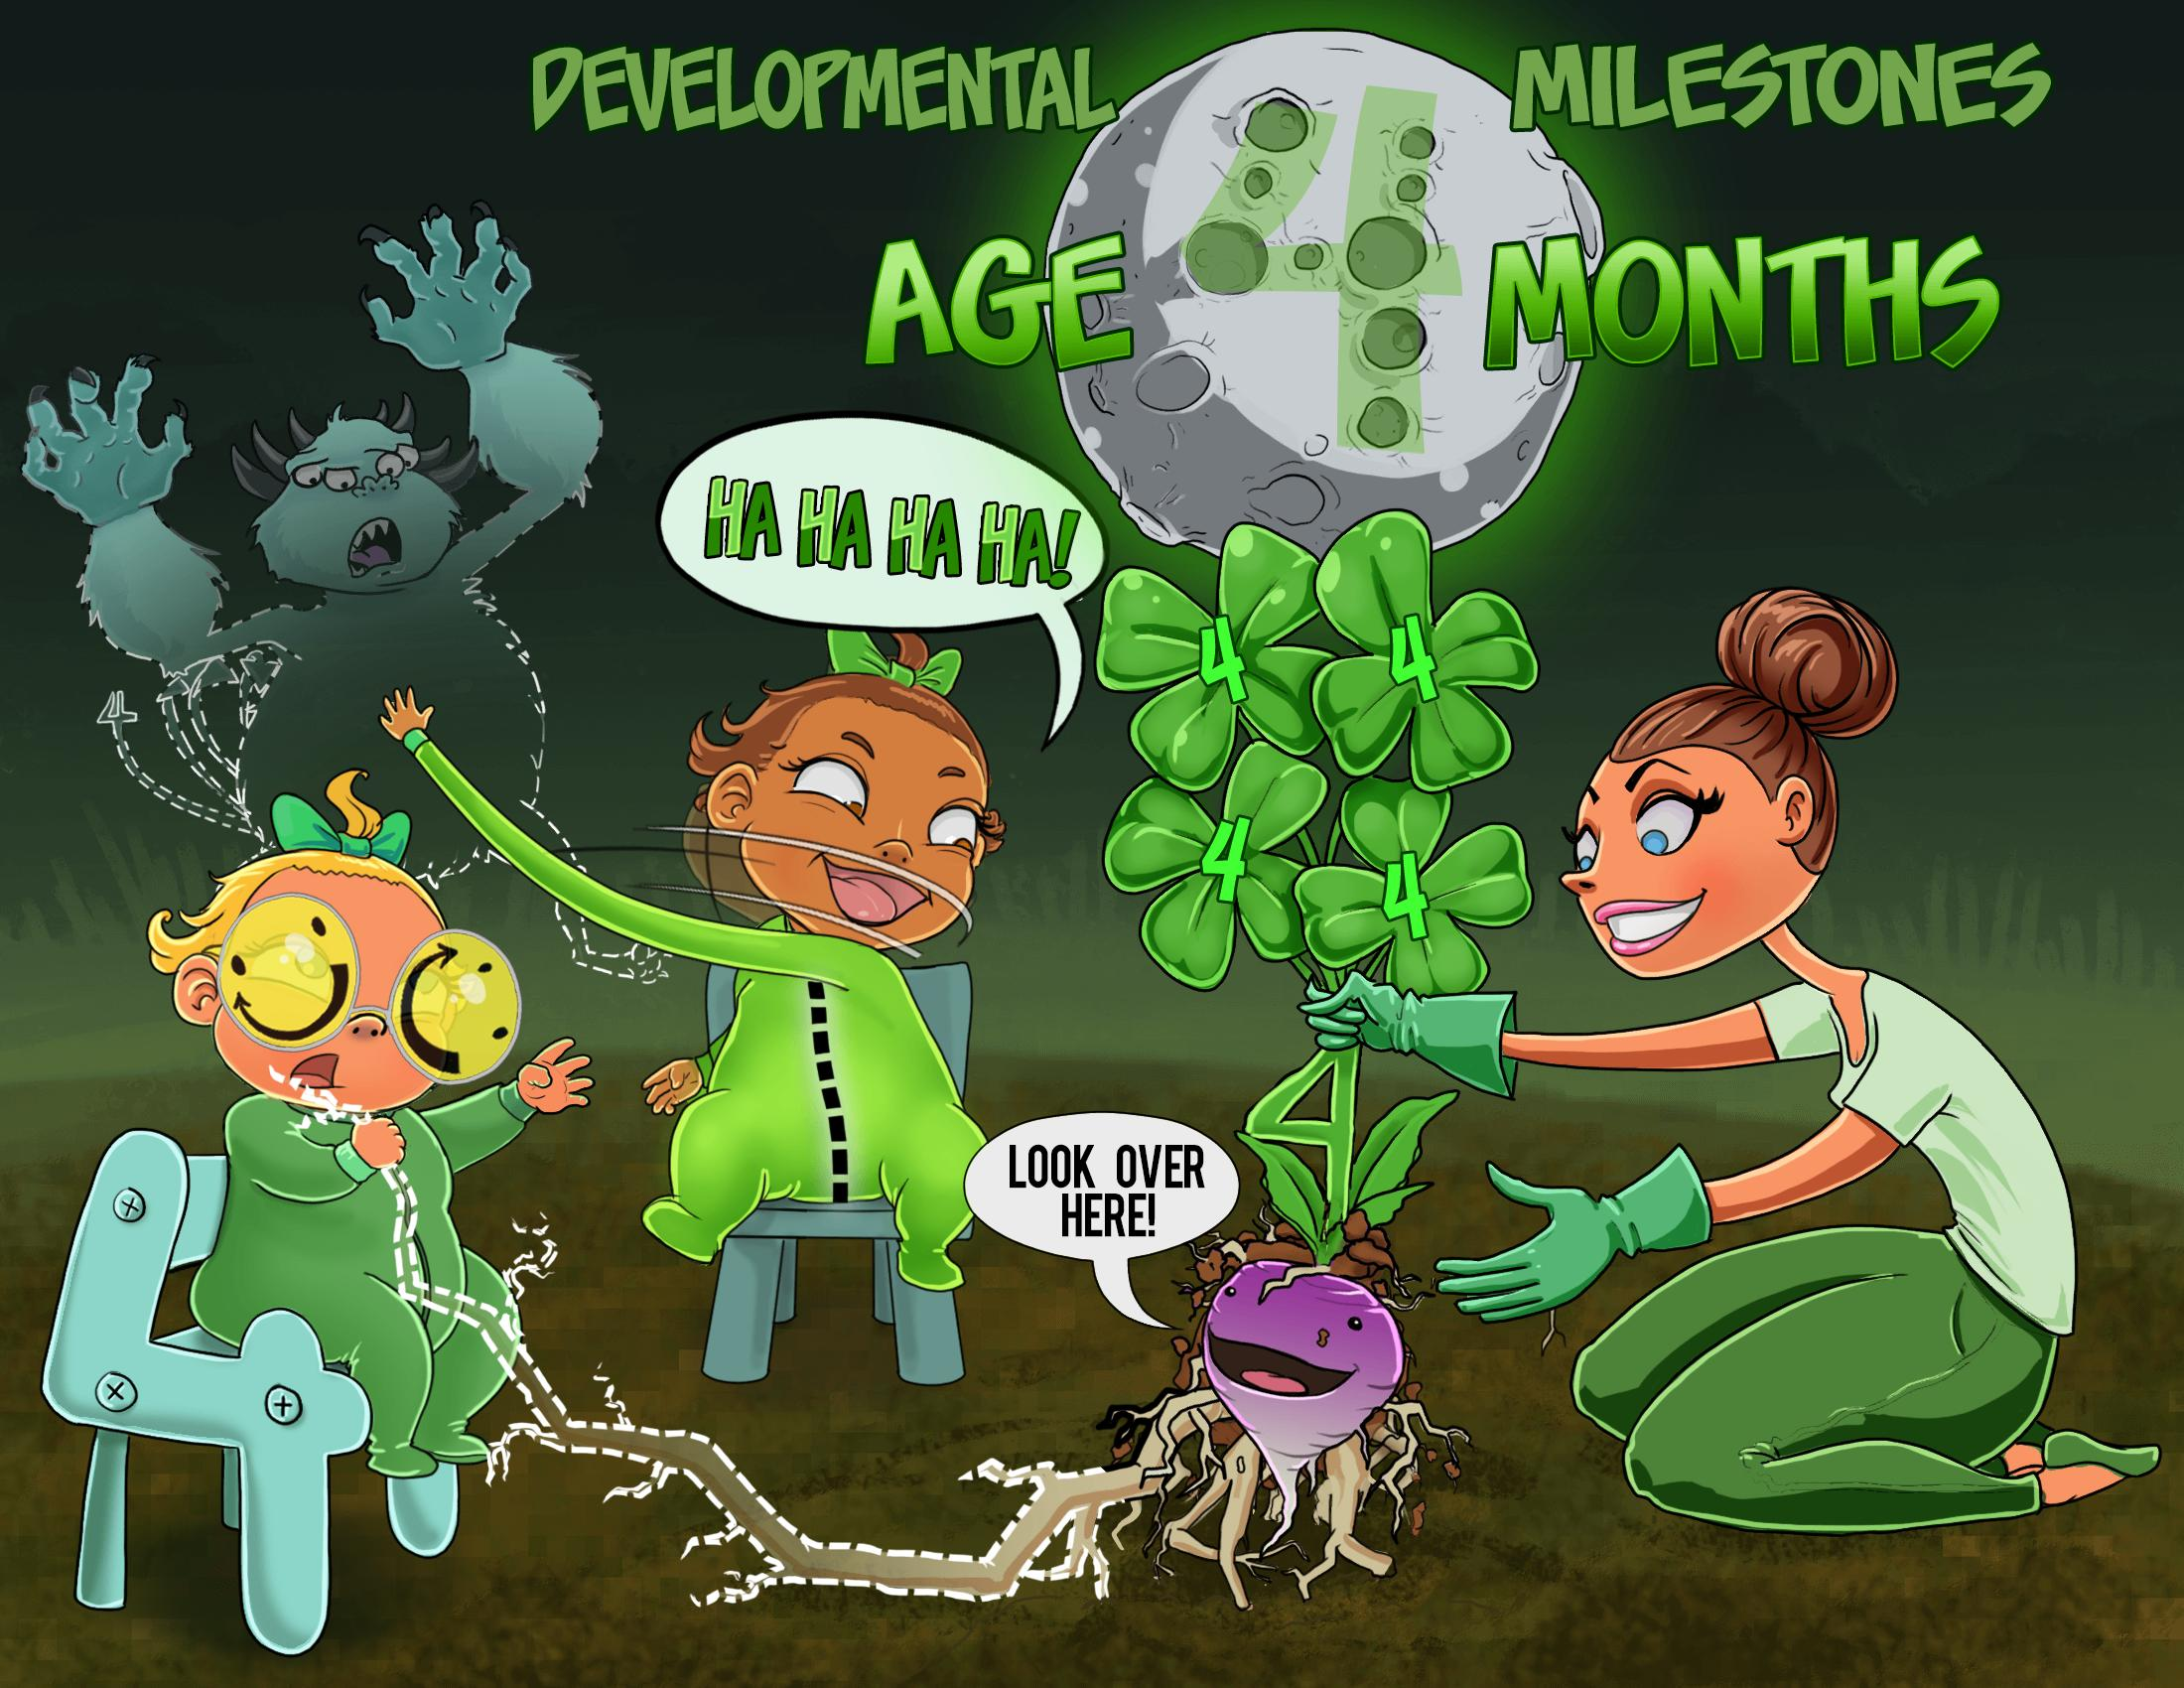 Age 4 Months - Developmental Milestones